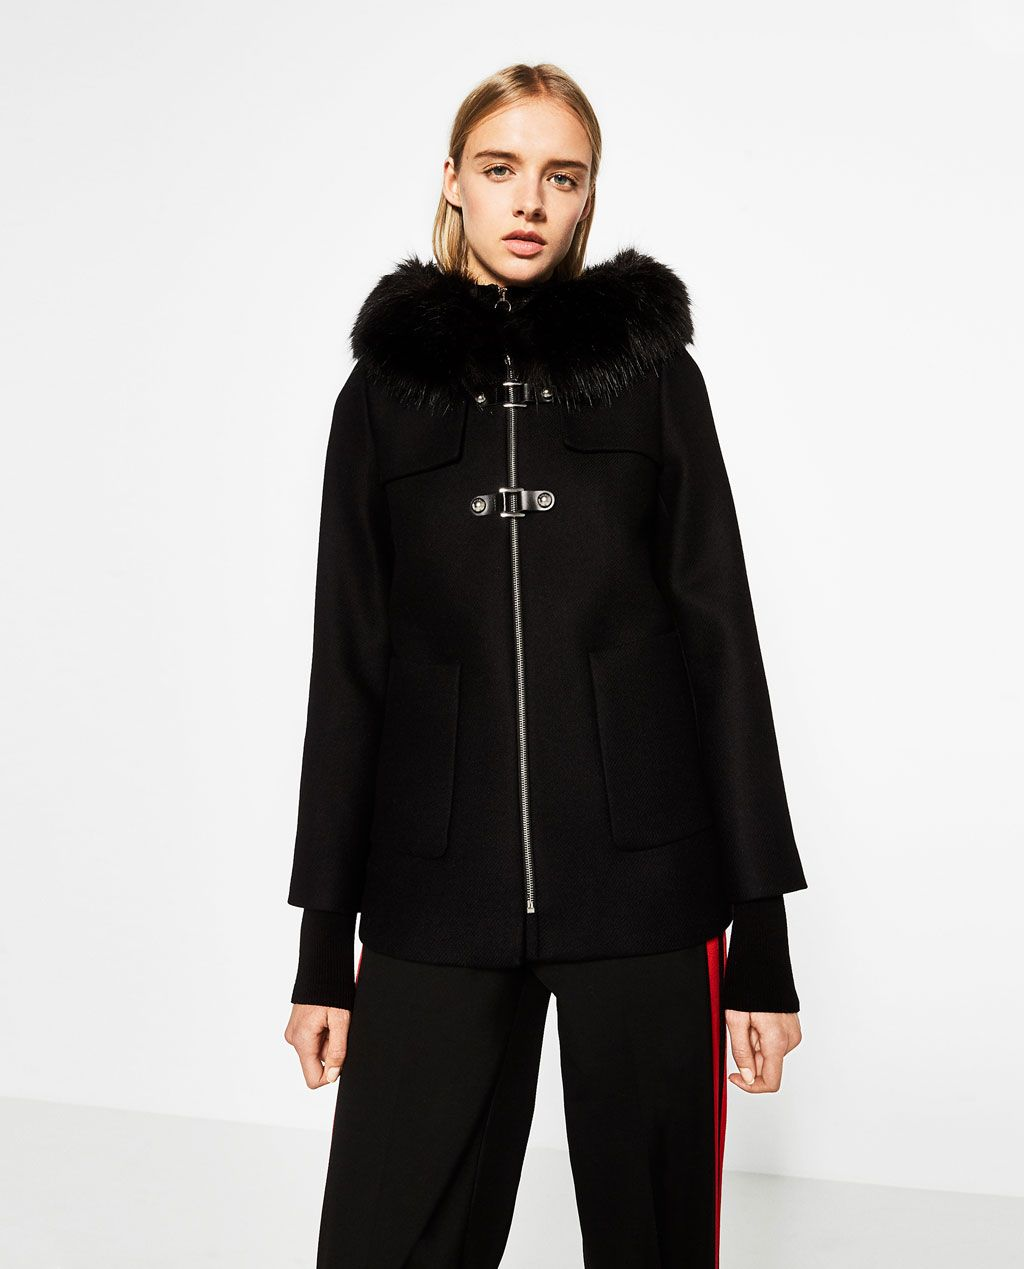 6a5f7b0318 Image 2 of A-LINE DUFFLE COAT from Zara | zara 4ever in 2019 ...